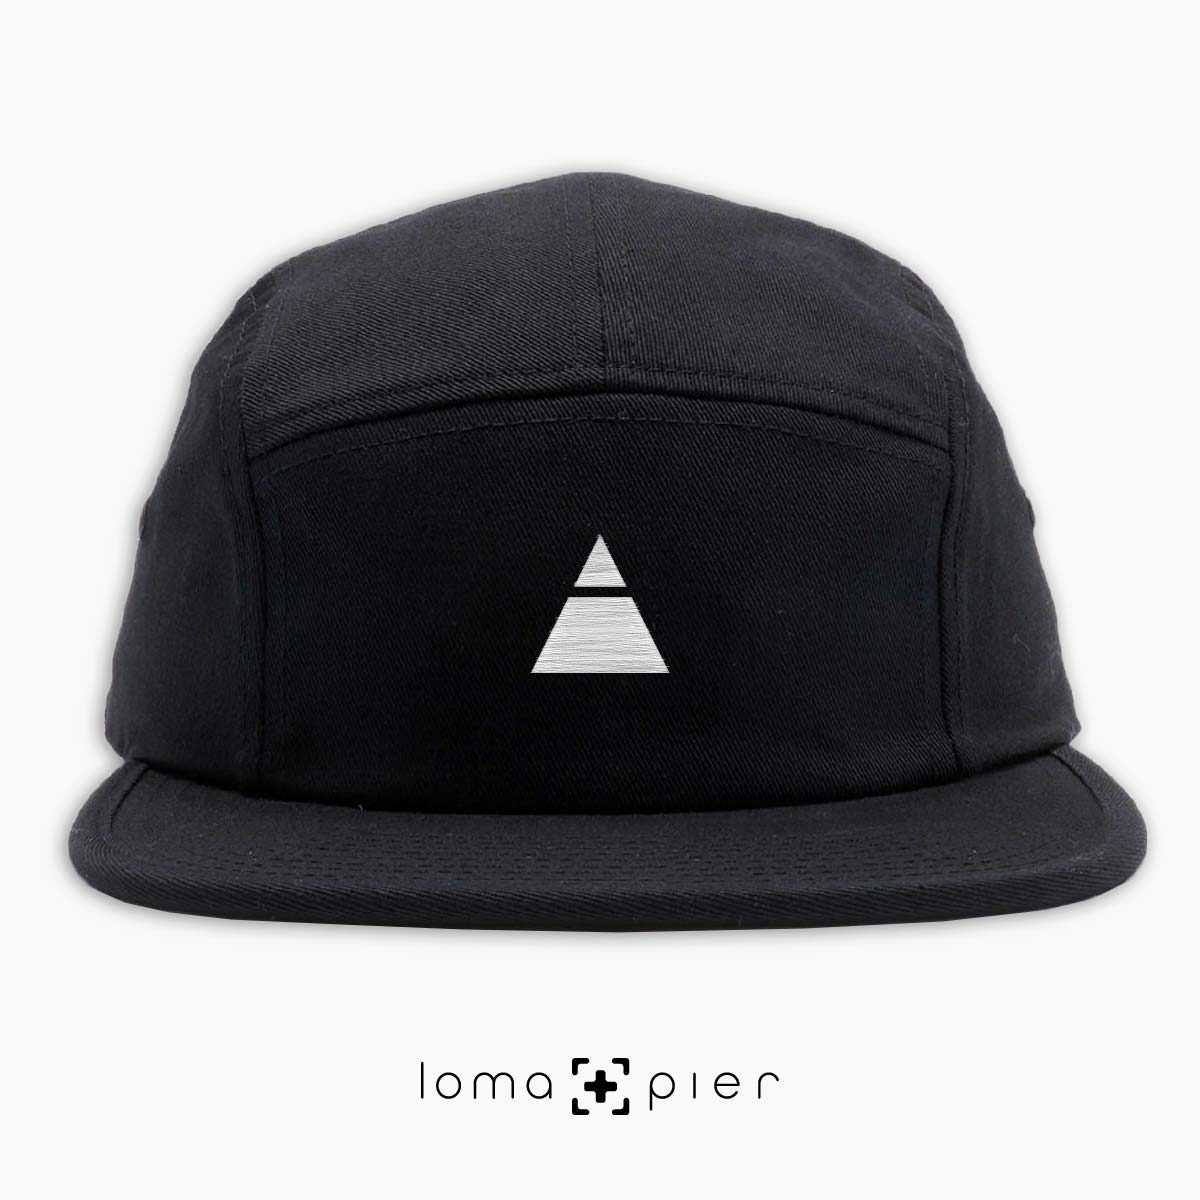 TRYANGLE icon embroidered on a black cotton 5-panel hat with white thread by loma+pier hat store